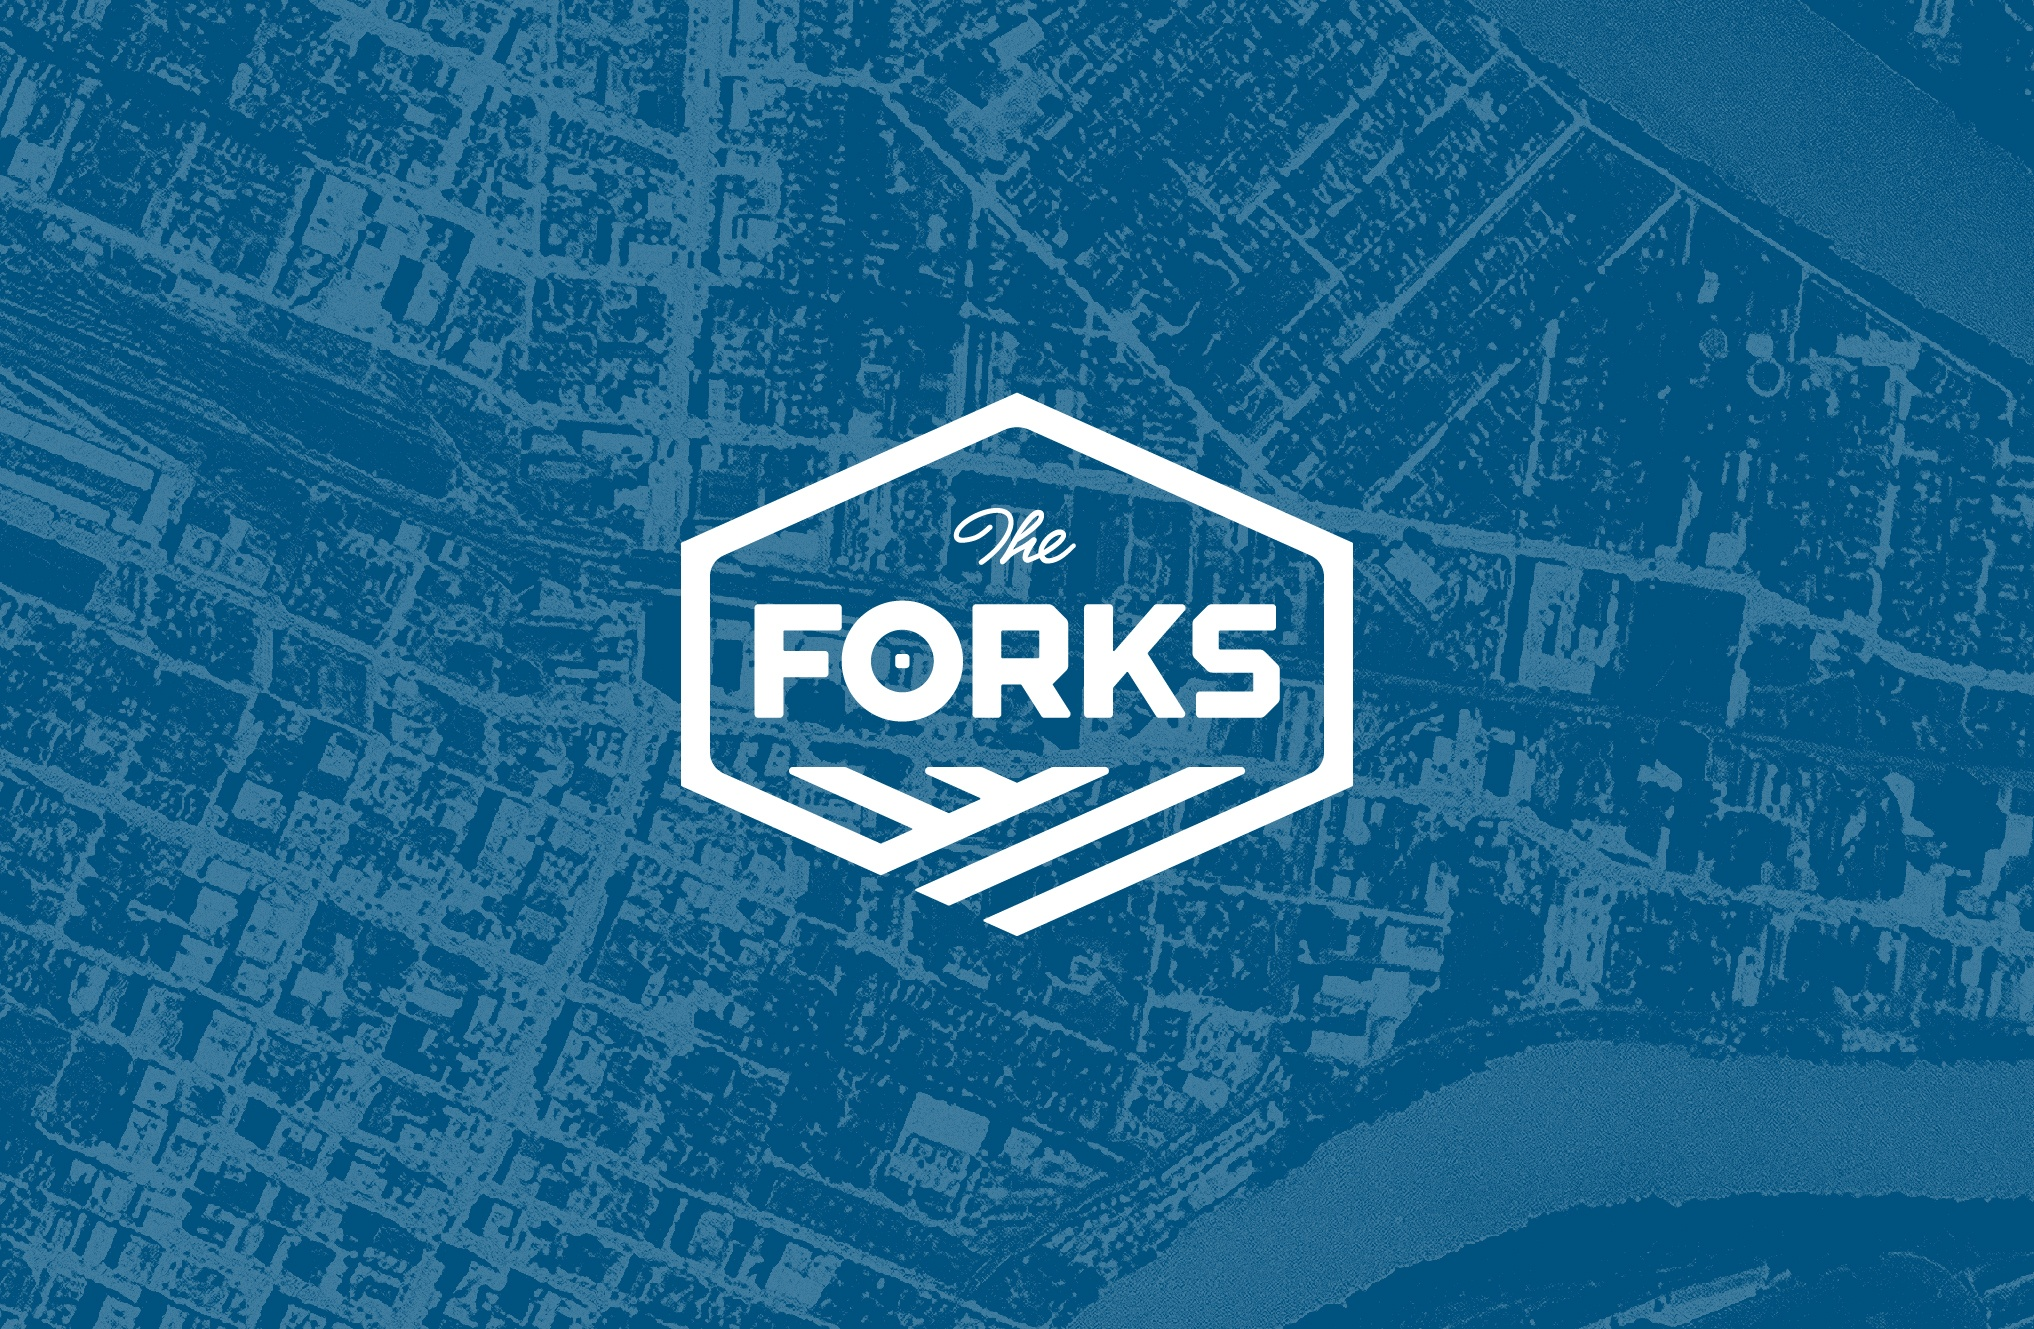 The Forks illustration graphic